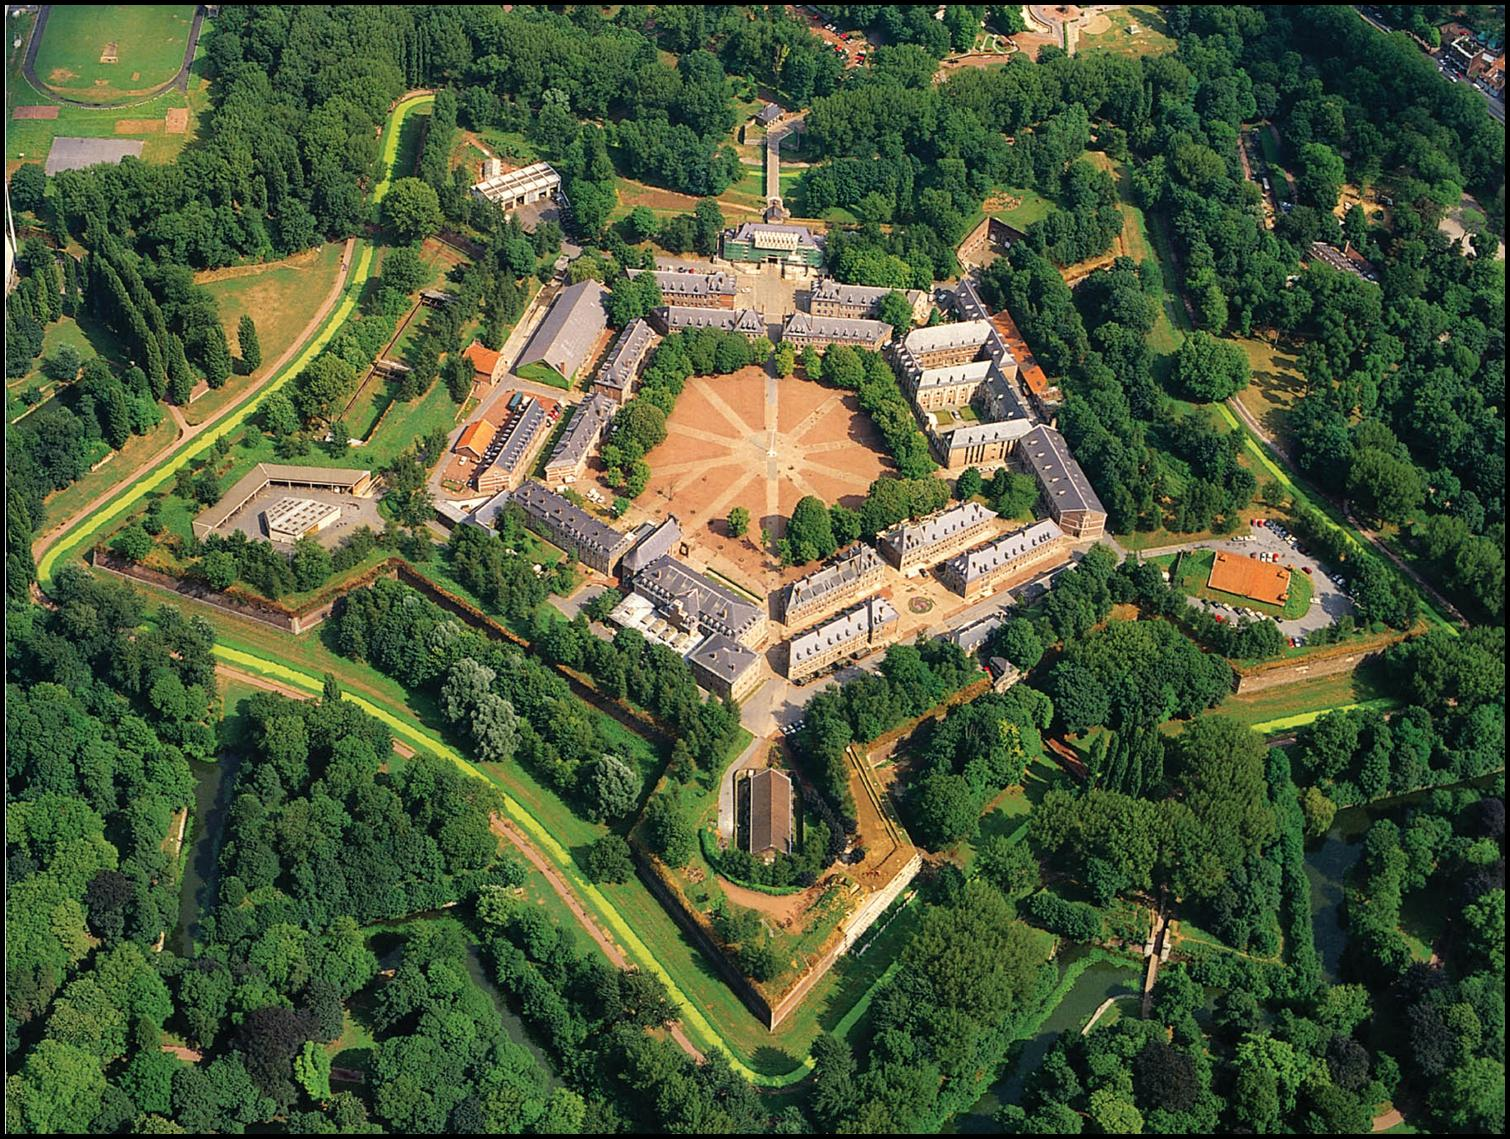 https://upload.wikimedia.org/wikipedia/commons/f/f9/Citadelle_vue_du_ciel.jpg